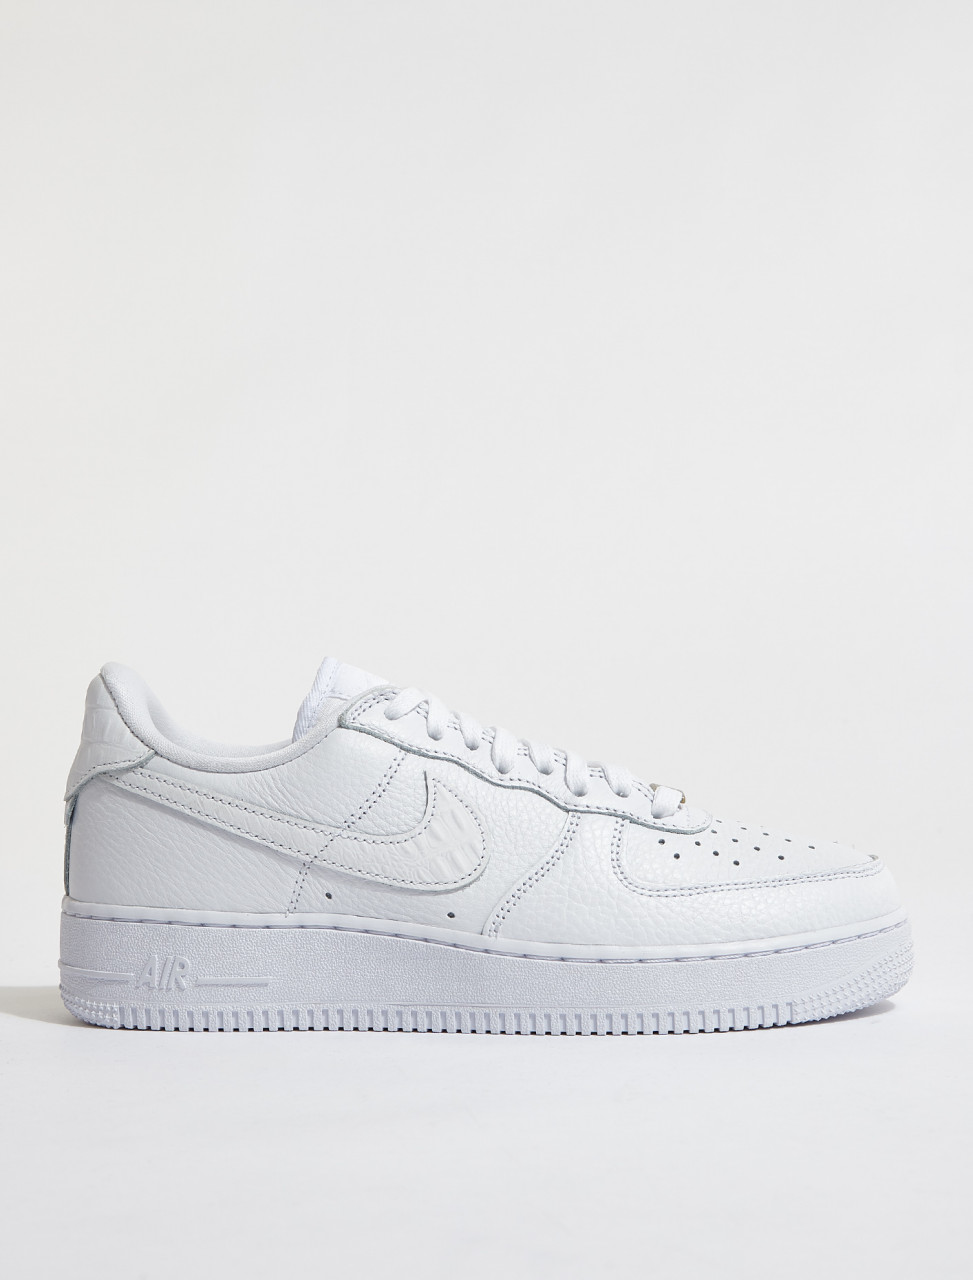 CU4865-100 NIKE AIR FORCE 1 07 CRAFT WHITE